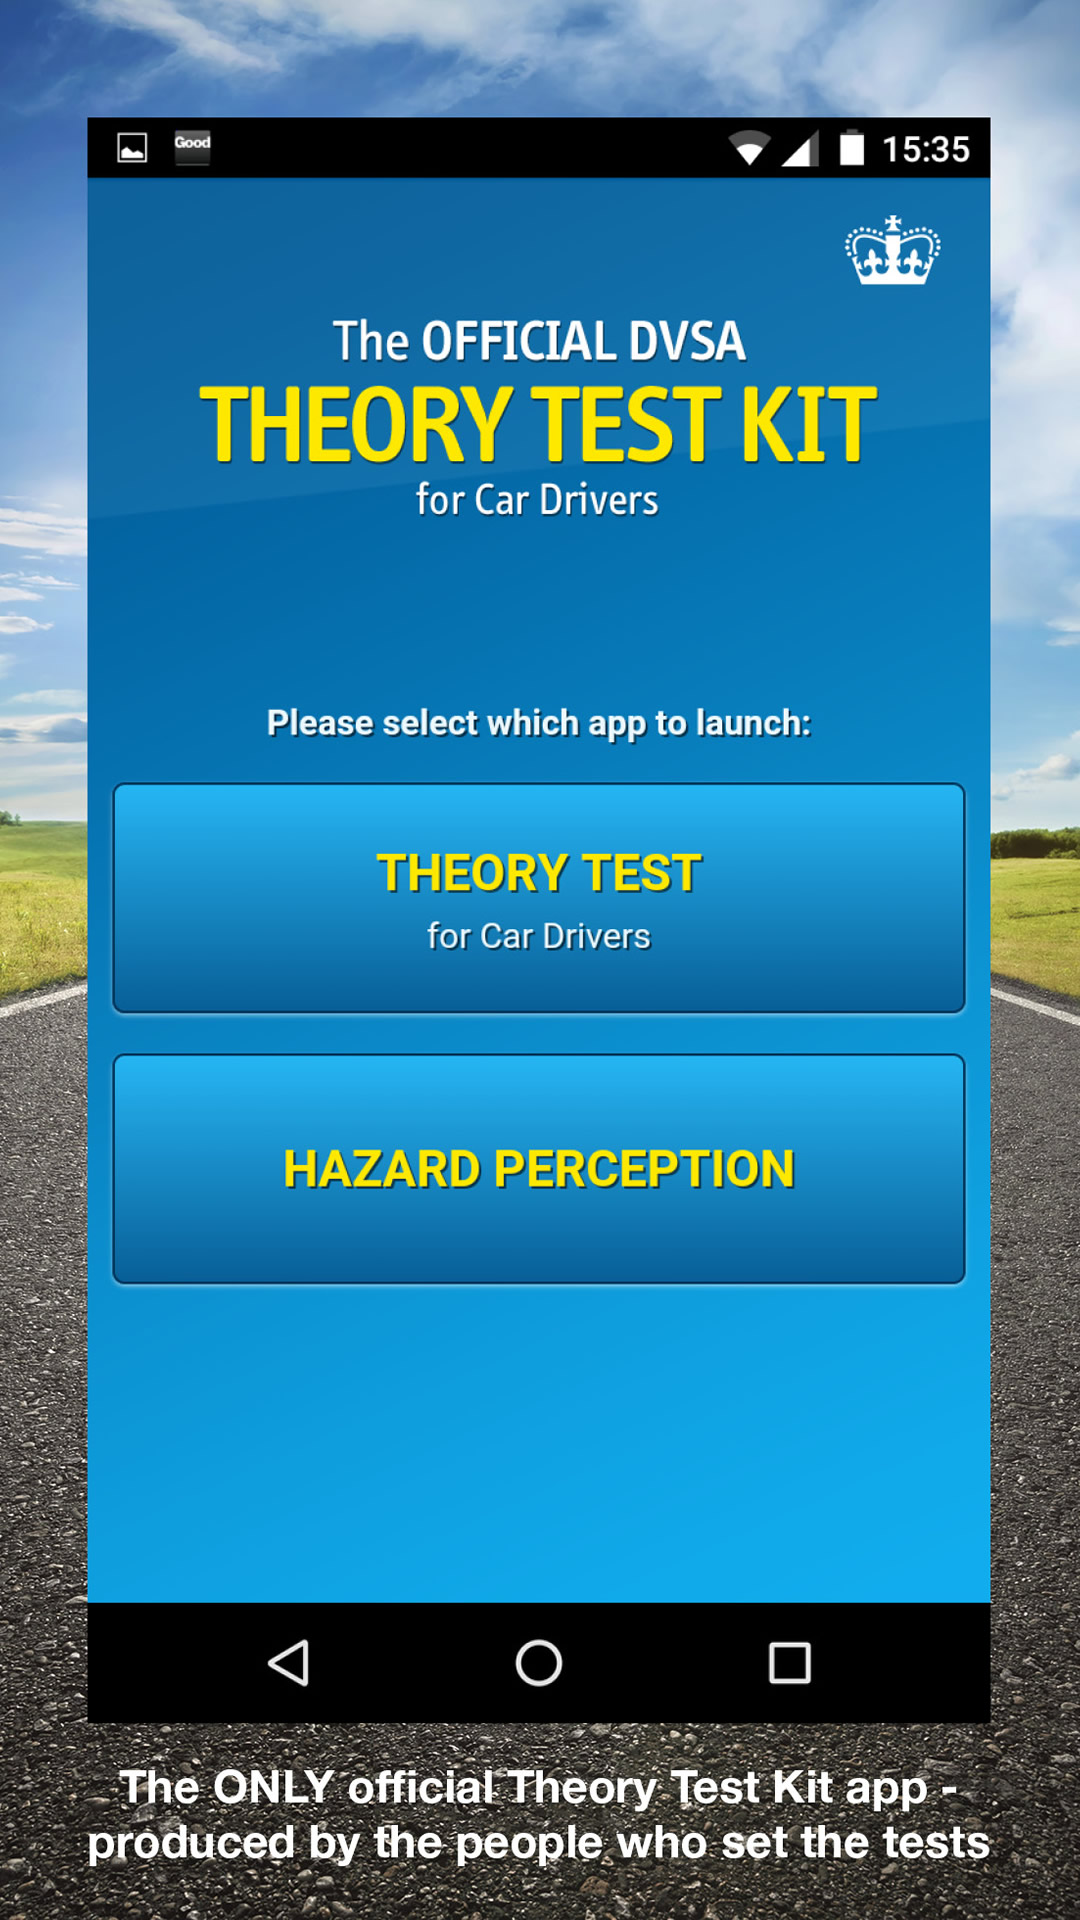 Official DVSA Theory Test Kit: Amazon.co.uk: Appstore for